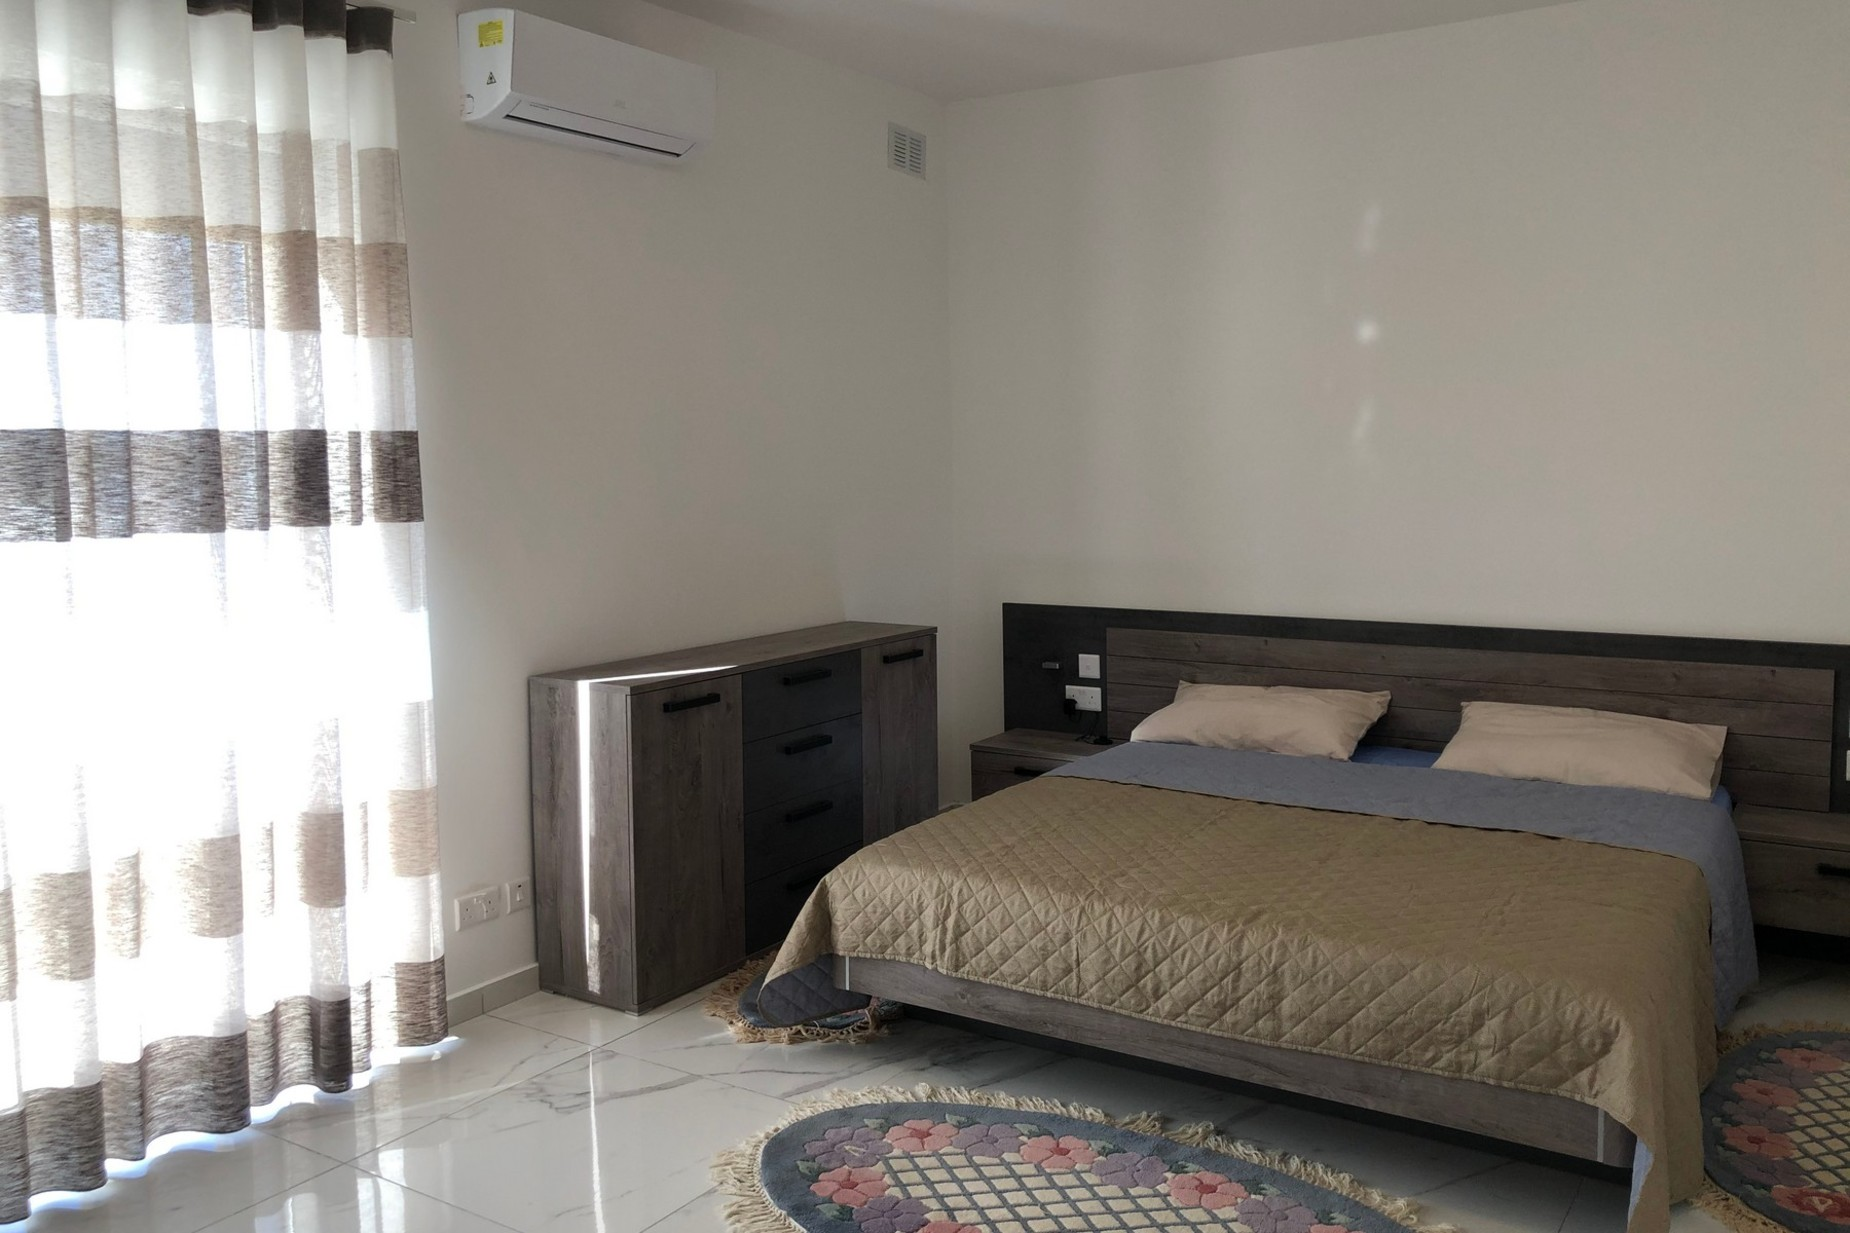 3 bed Penthouse For Rent in Bahar ic-Caghaq, Bahar ic-Caghaq - thumb 5